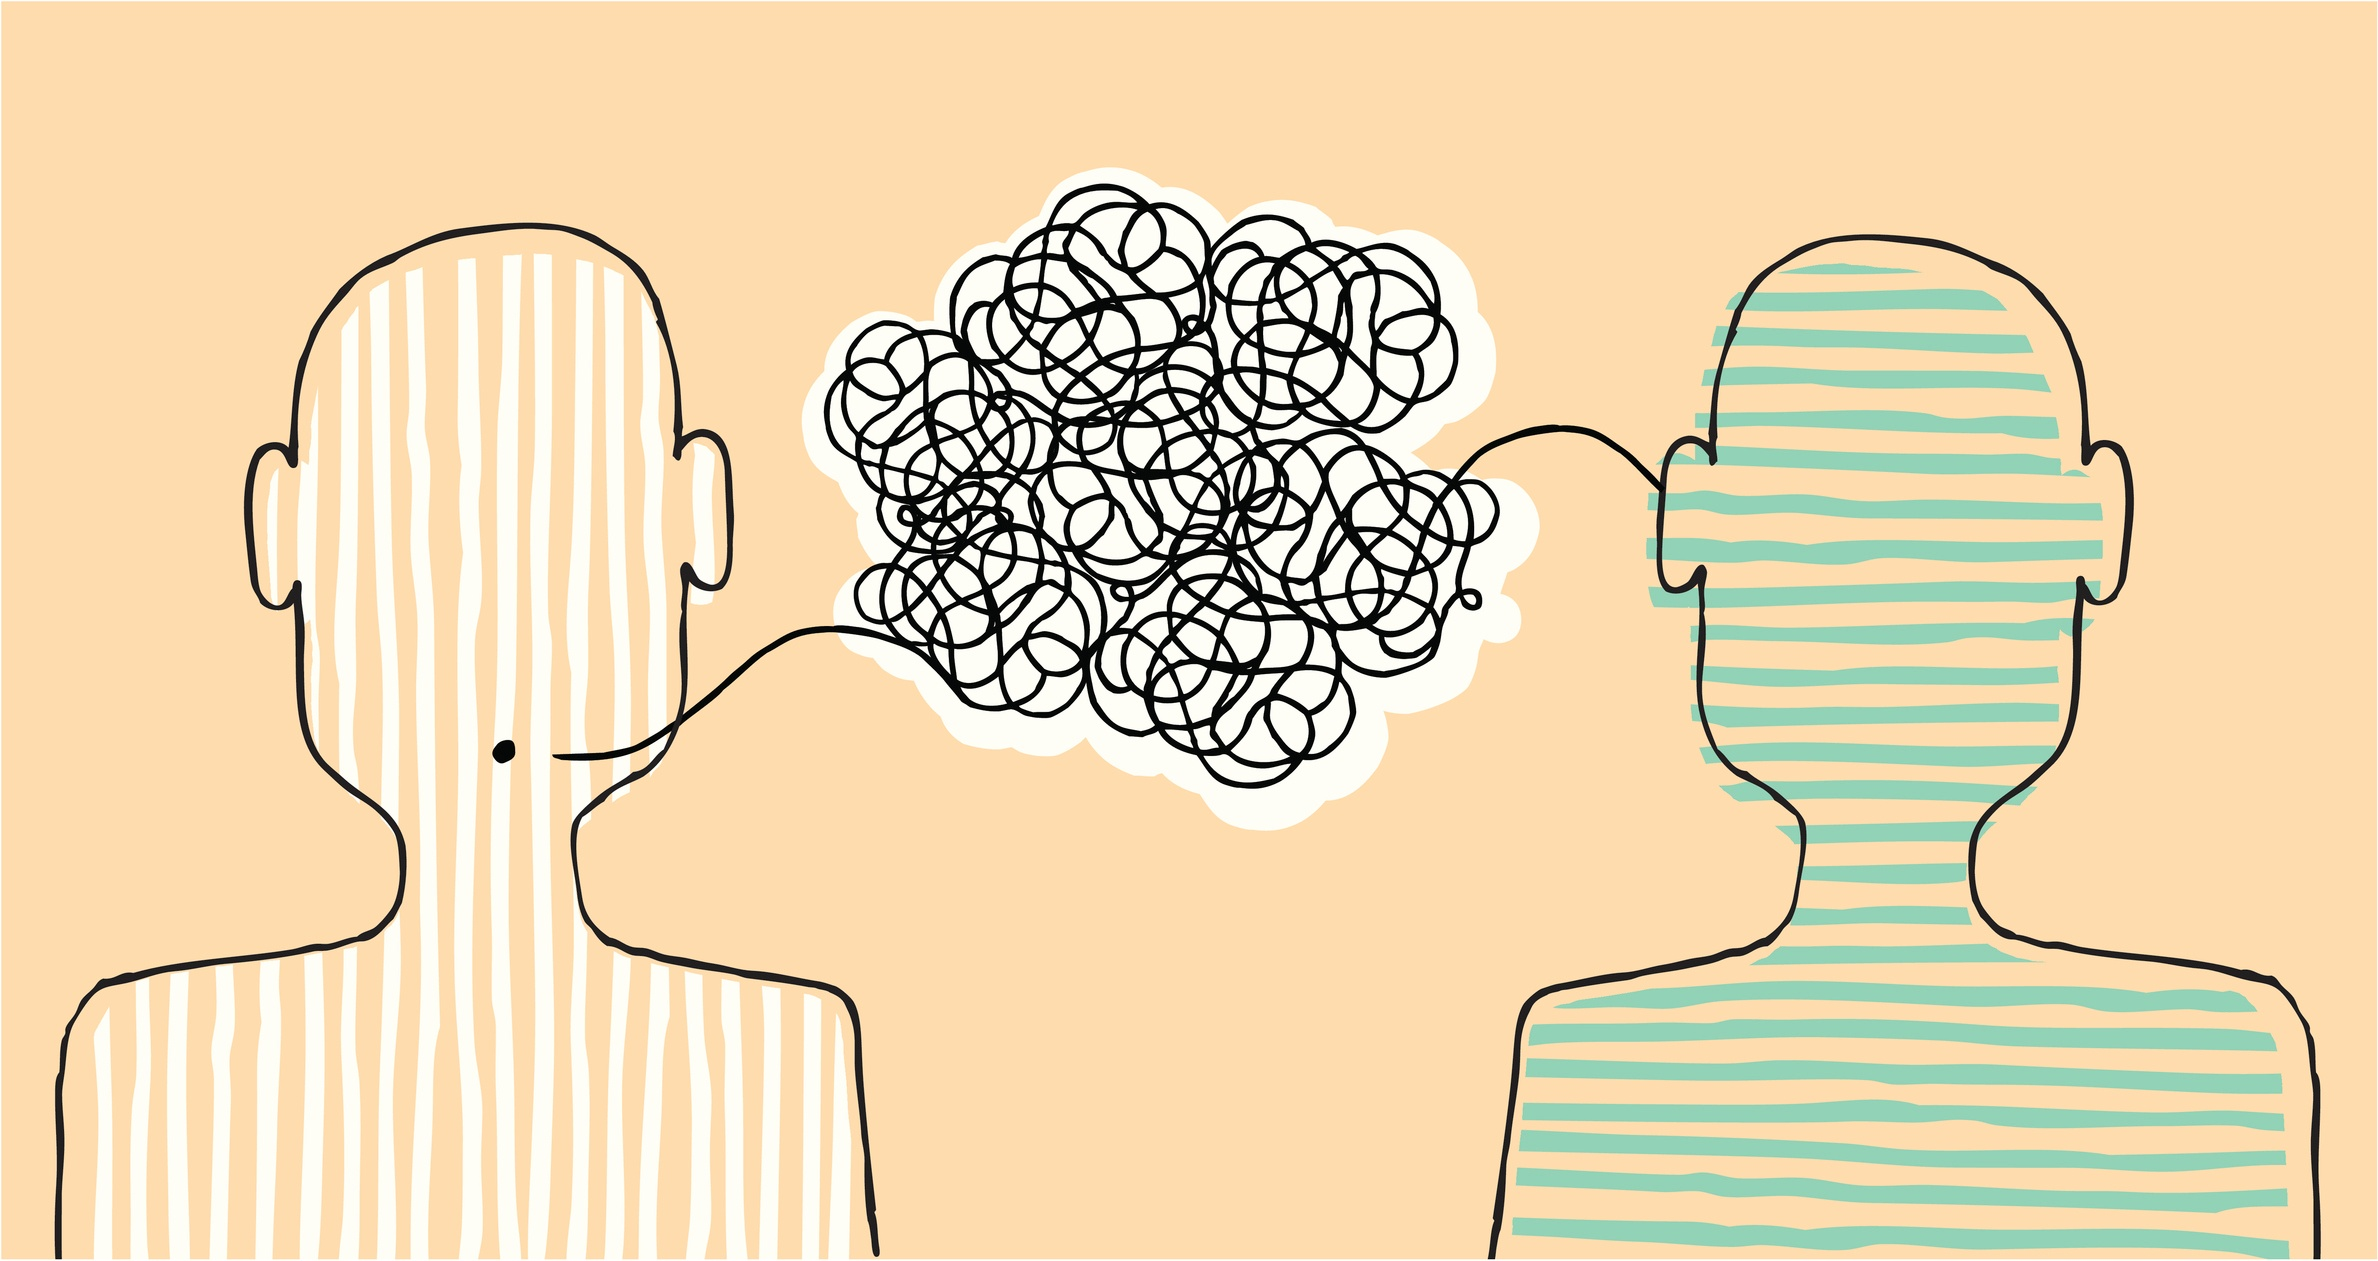 Communicating With Dementia: Avoiding Distress and Irritation